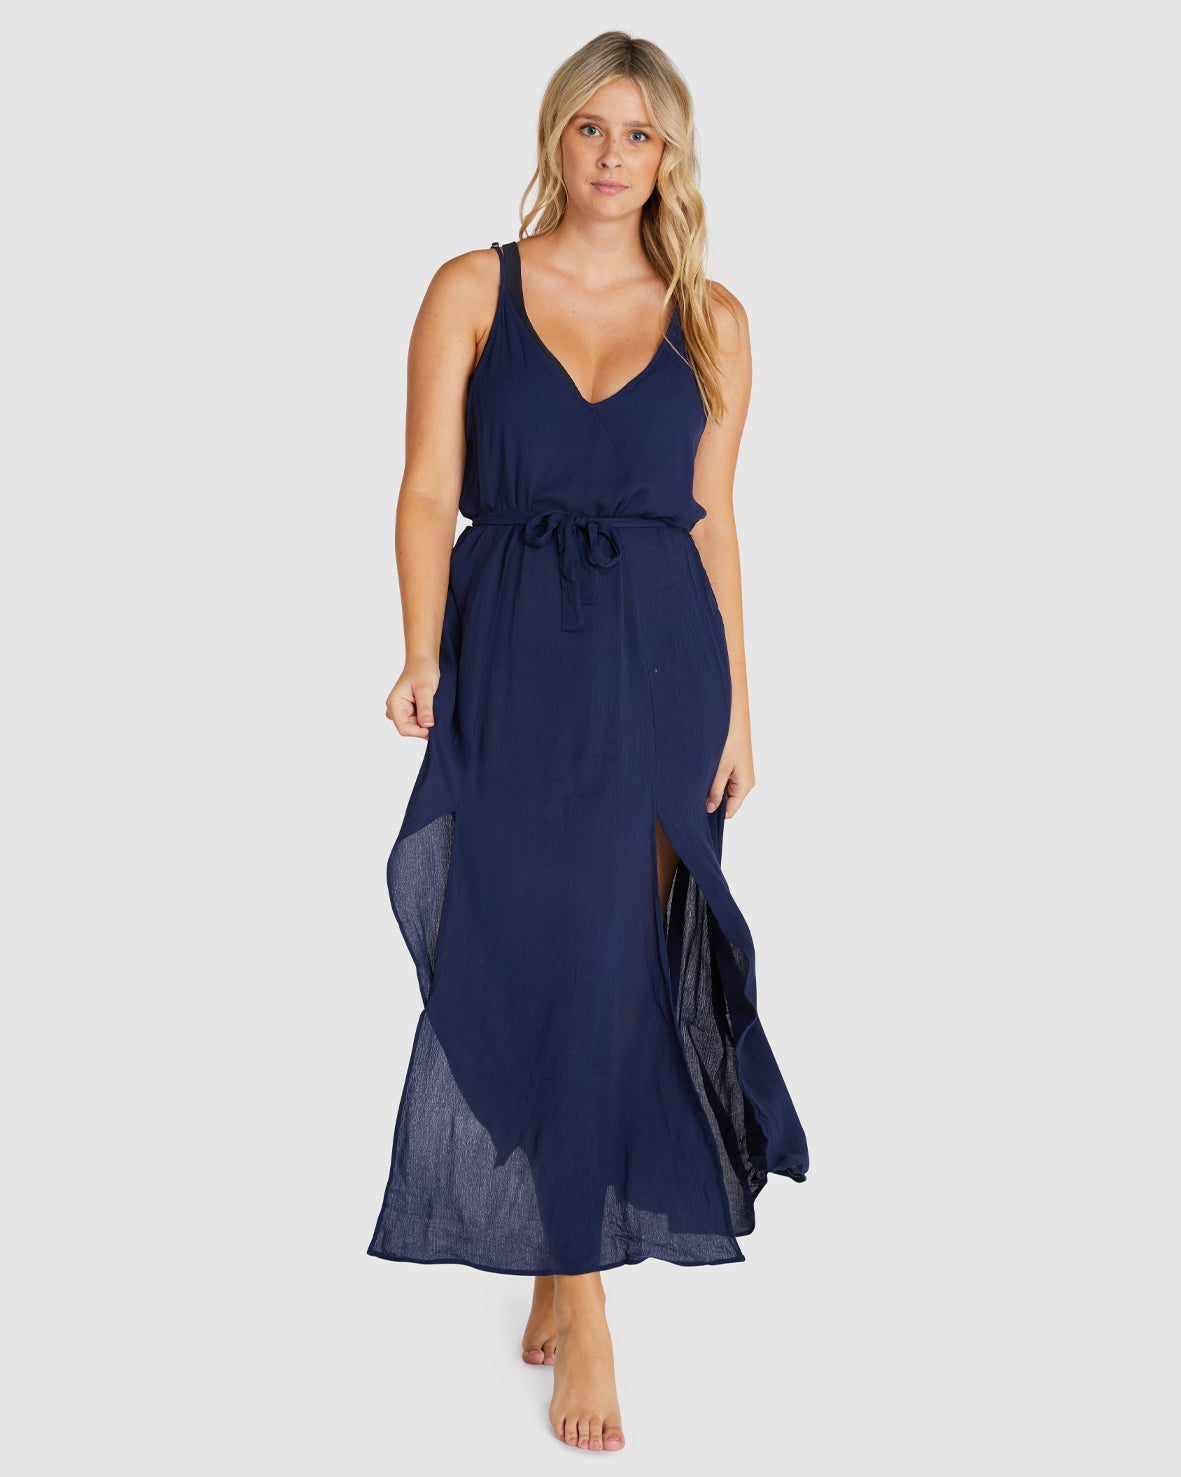 BEACH BASICS CRUISE DRESS